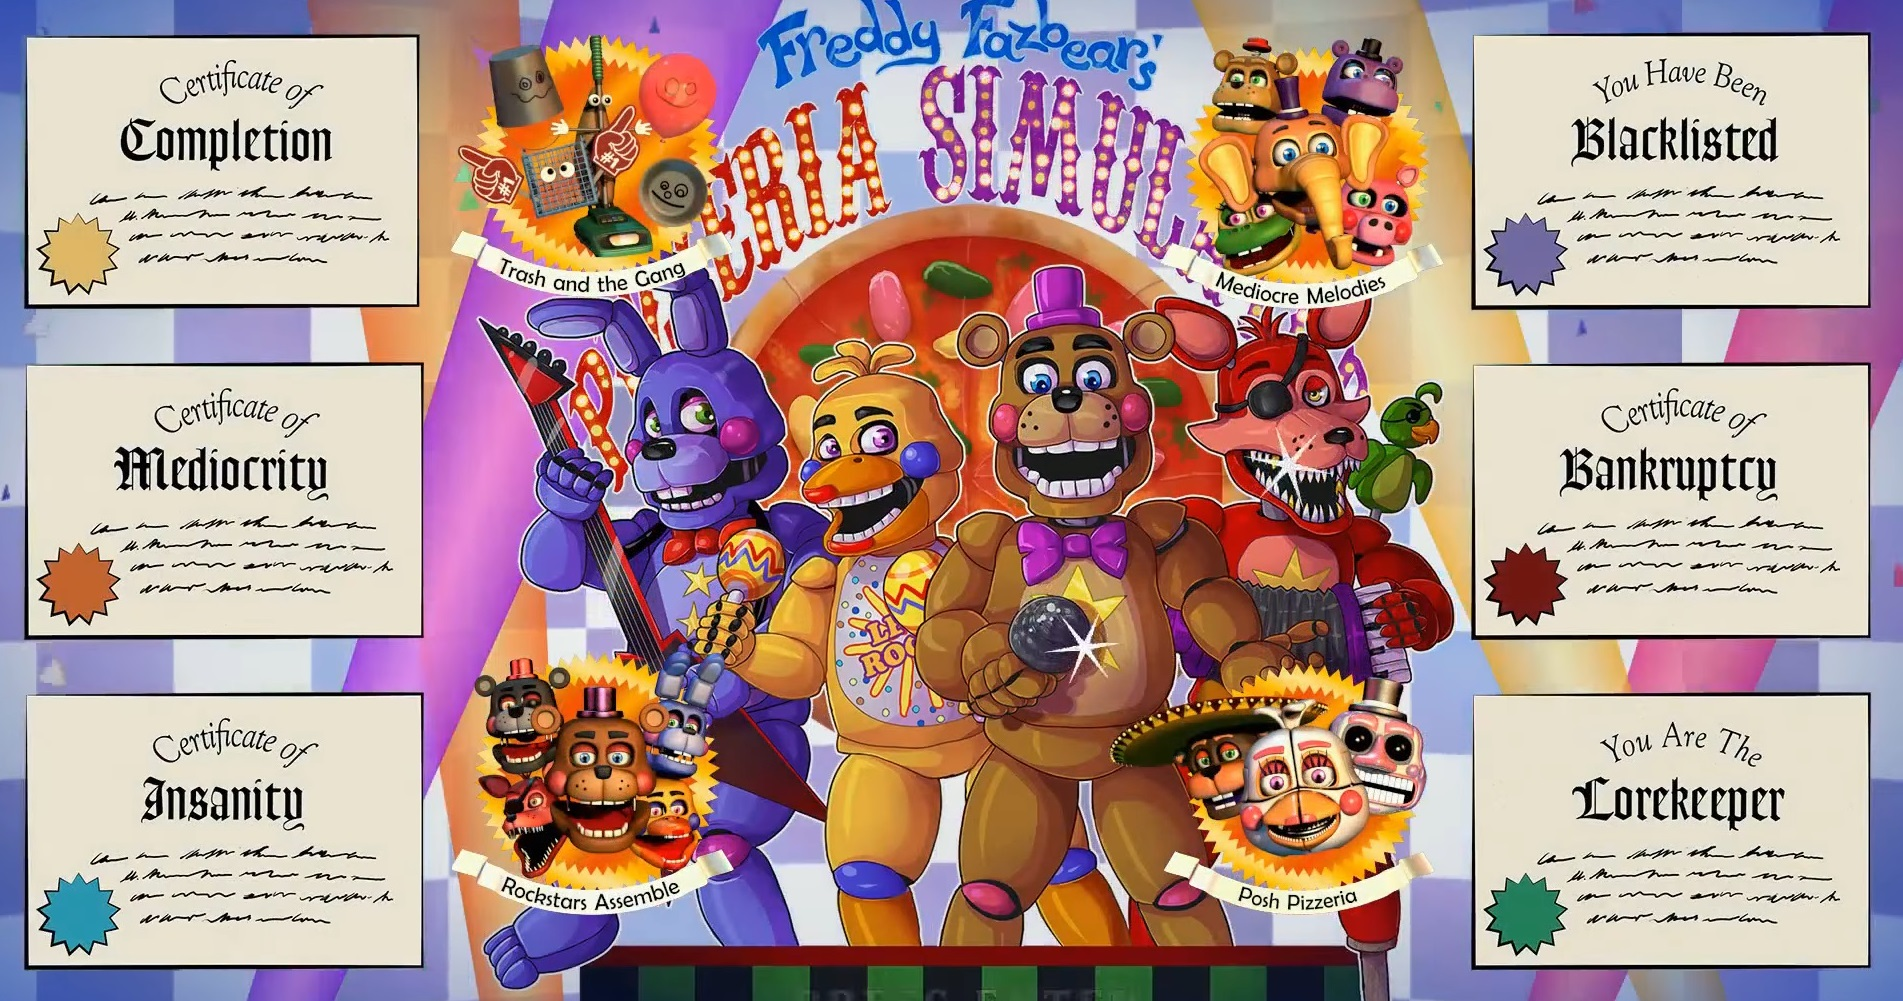 How to Get All Certificates in Freddy Fazbear's Pizzeria ...